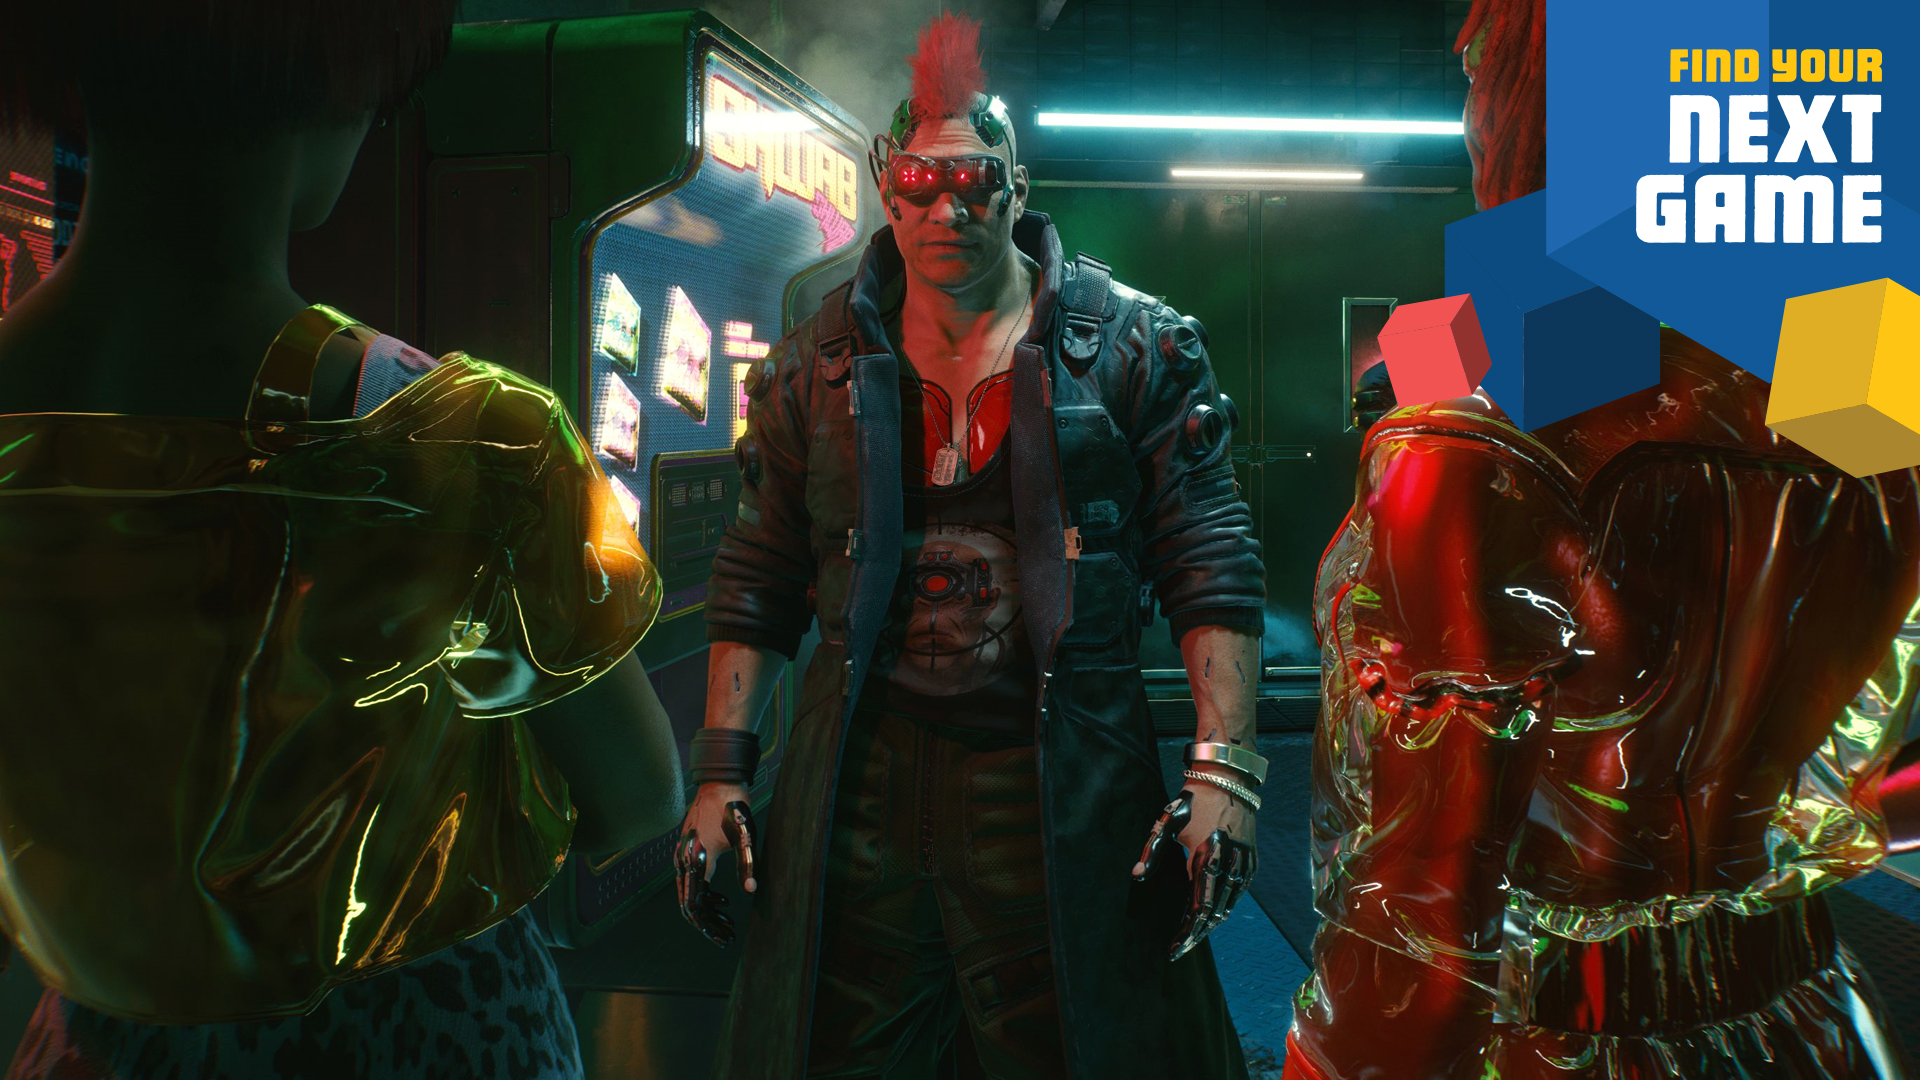 Cyberpunk 2077 Gameplay: Gunfight, driving, prologue